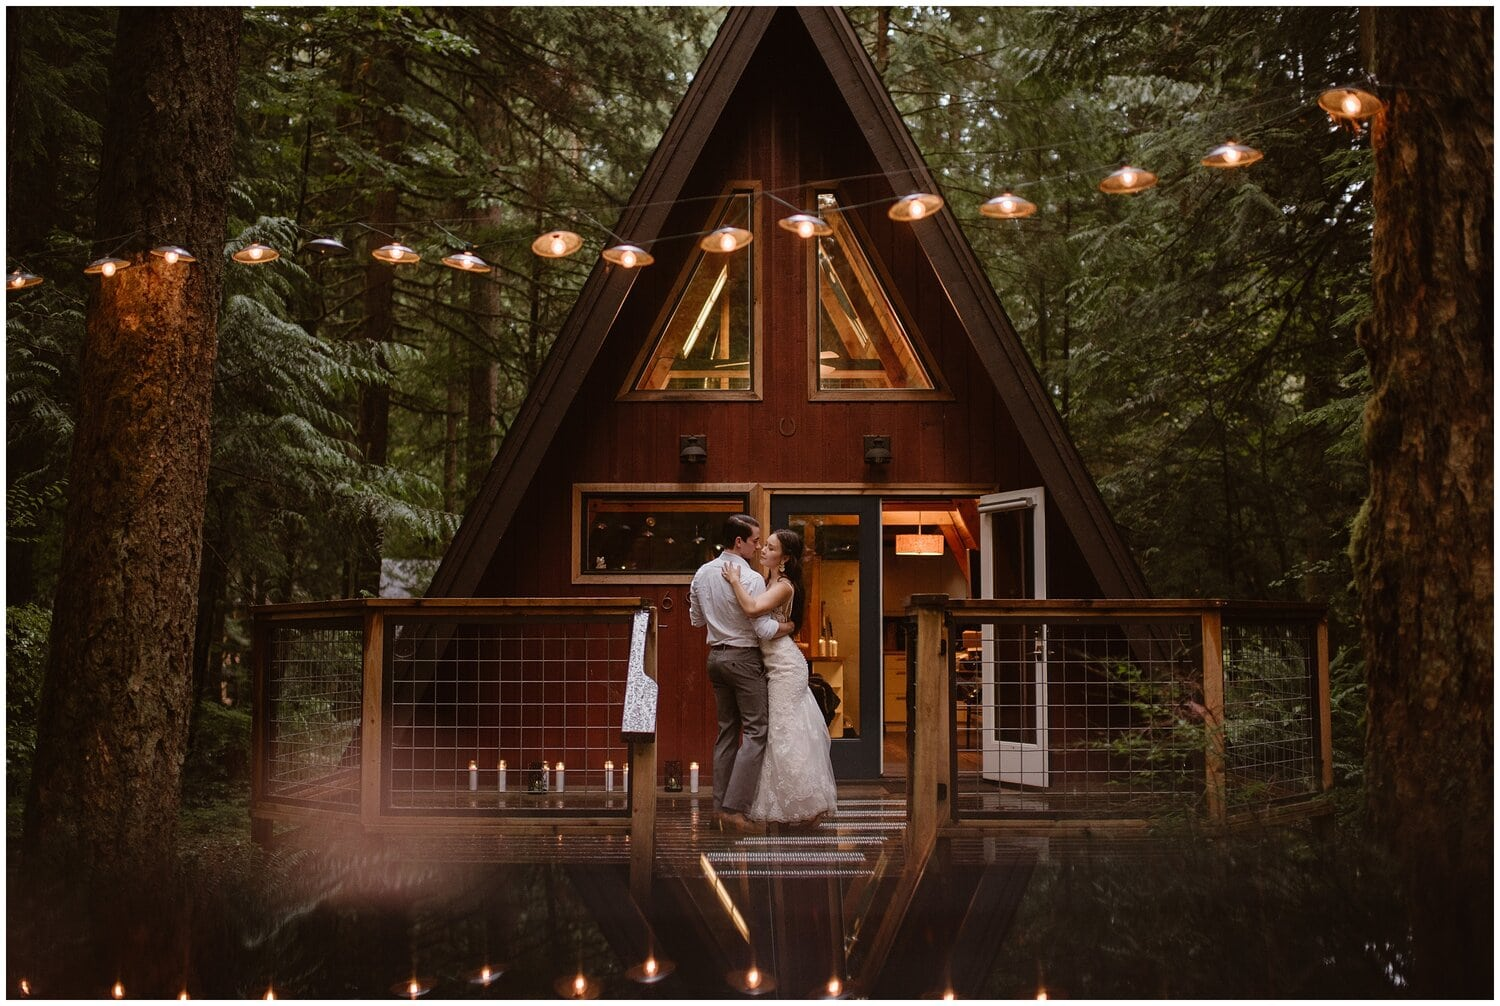 Bride and groom stand in front of an Airbnb treehouse for their wedding.